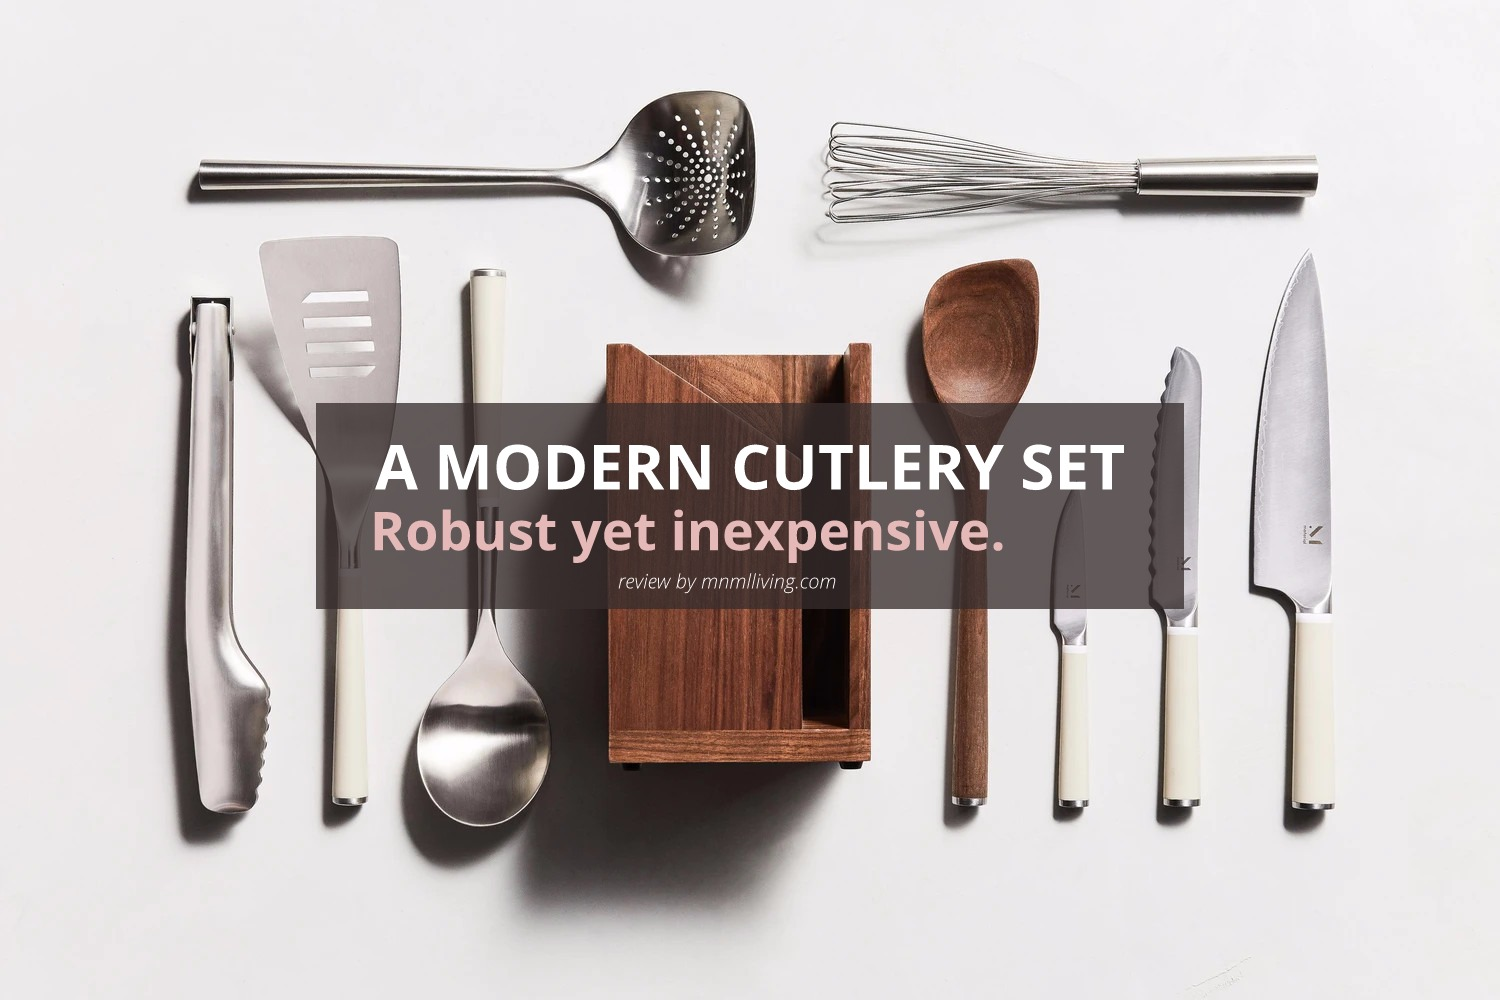 Modern Kitchen Knife Set, Professional Cutlery by Material